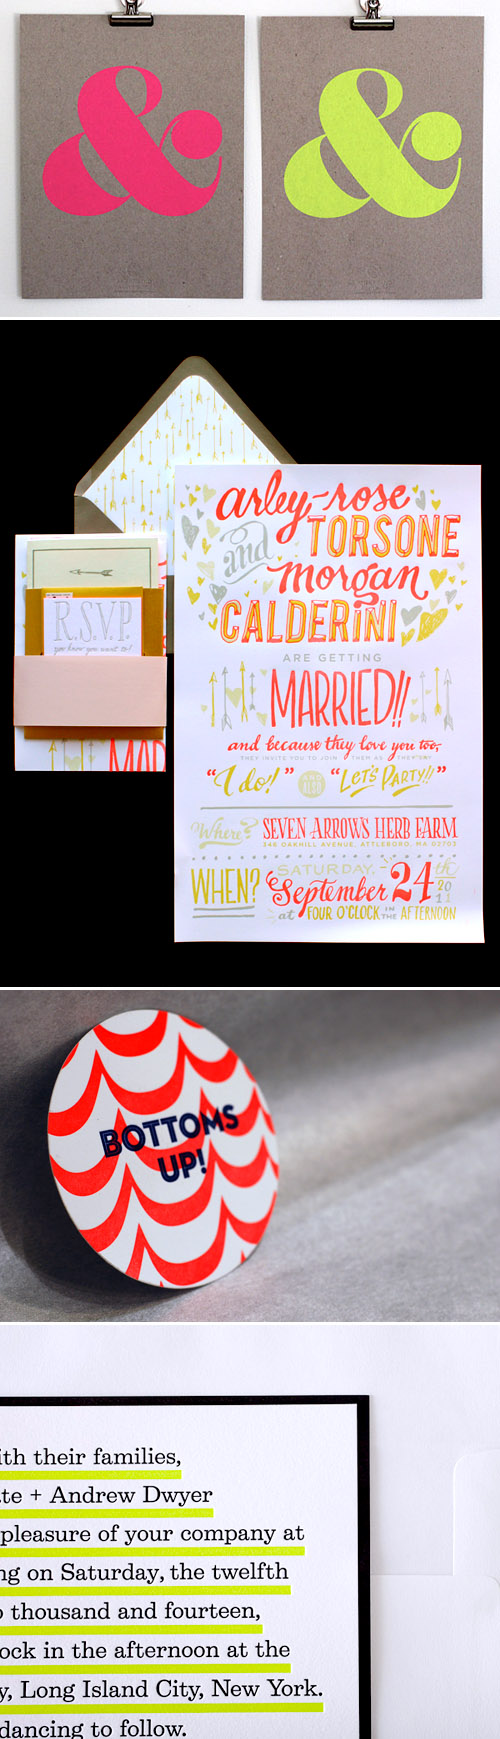 neon wedding invitations and decor